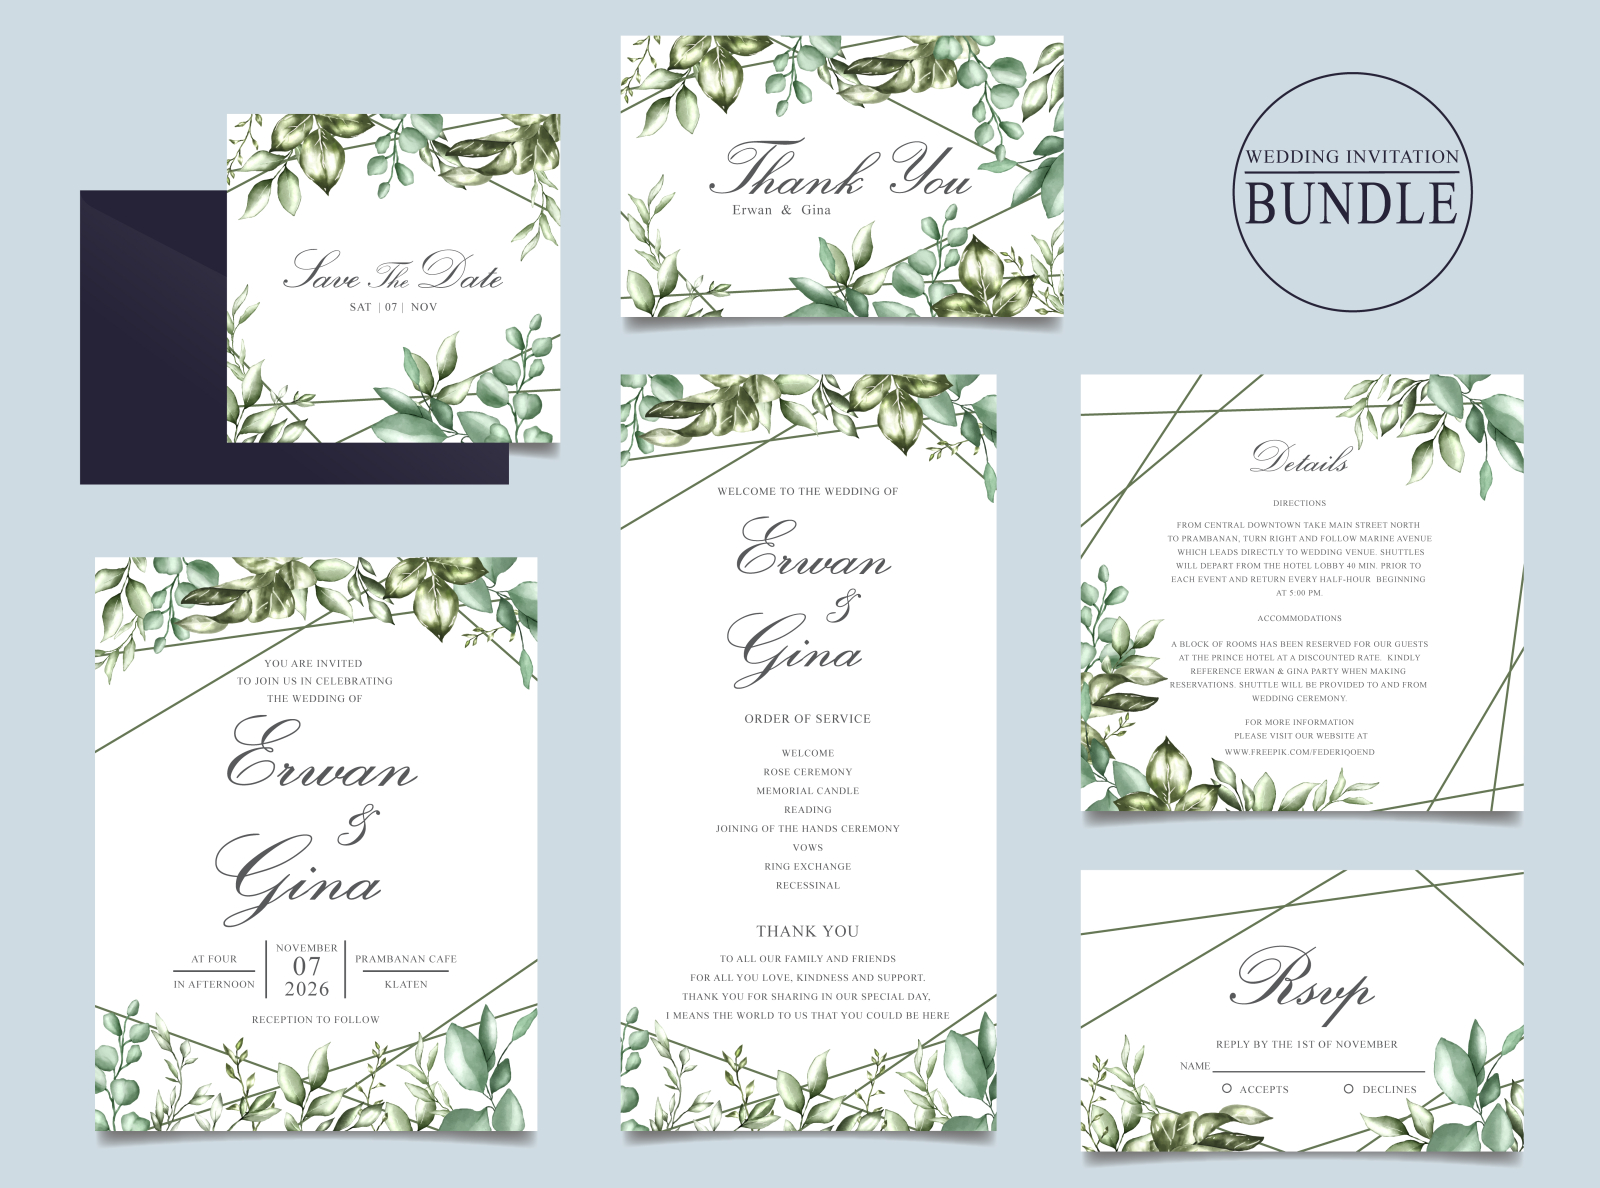 Wedding Invitation Card Bundle With Green Leaves Template By